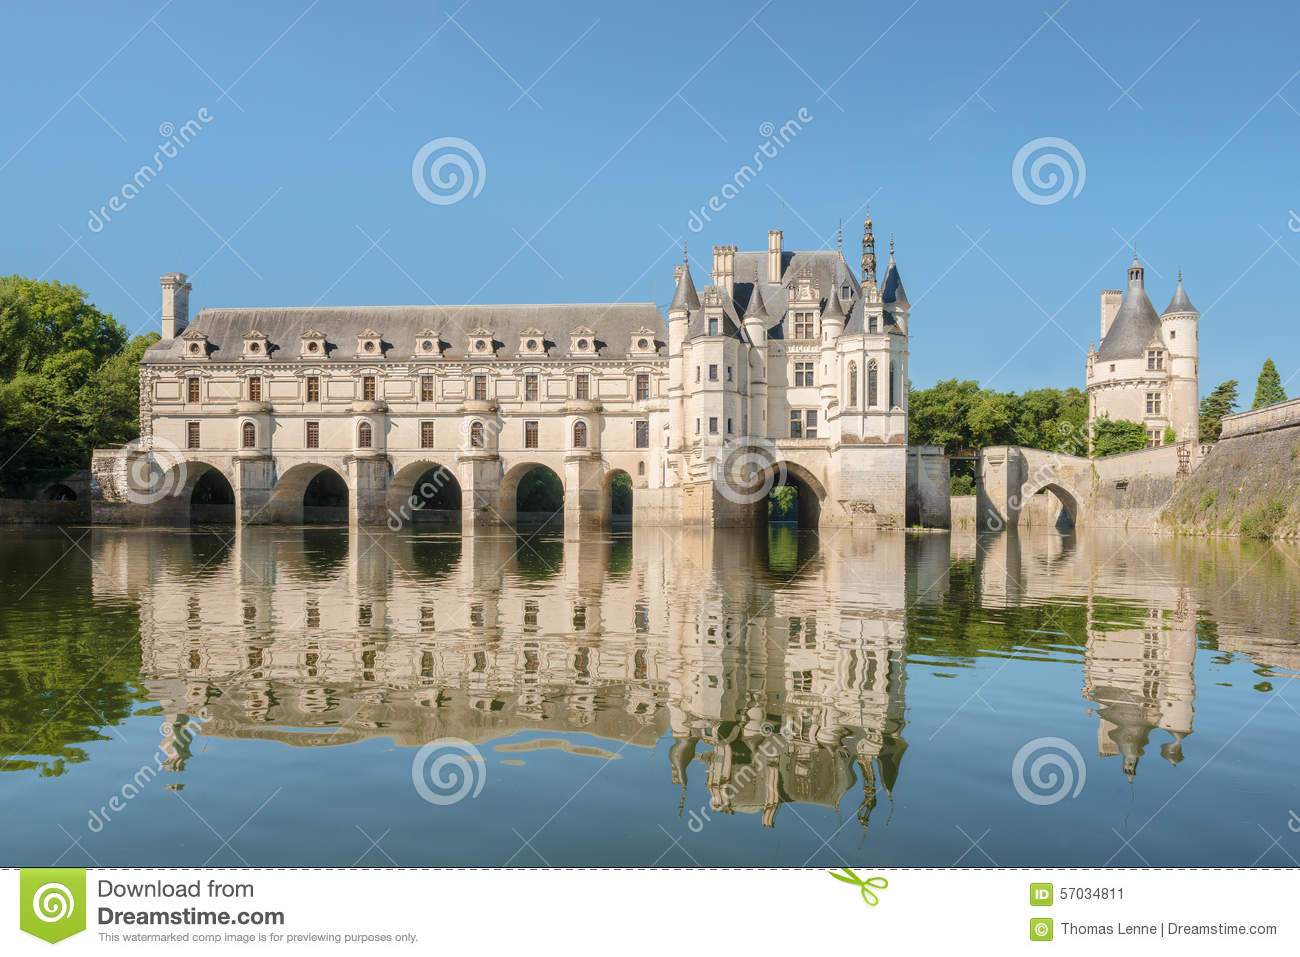 Chenonceau castle built over the cher river loire valley france view from the river on gradient blue sky background